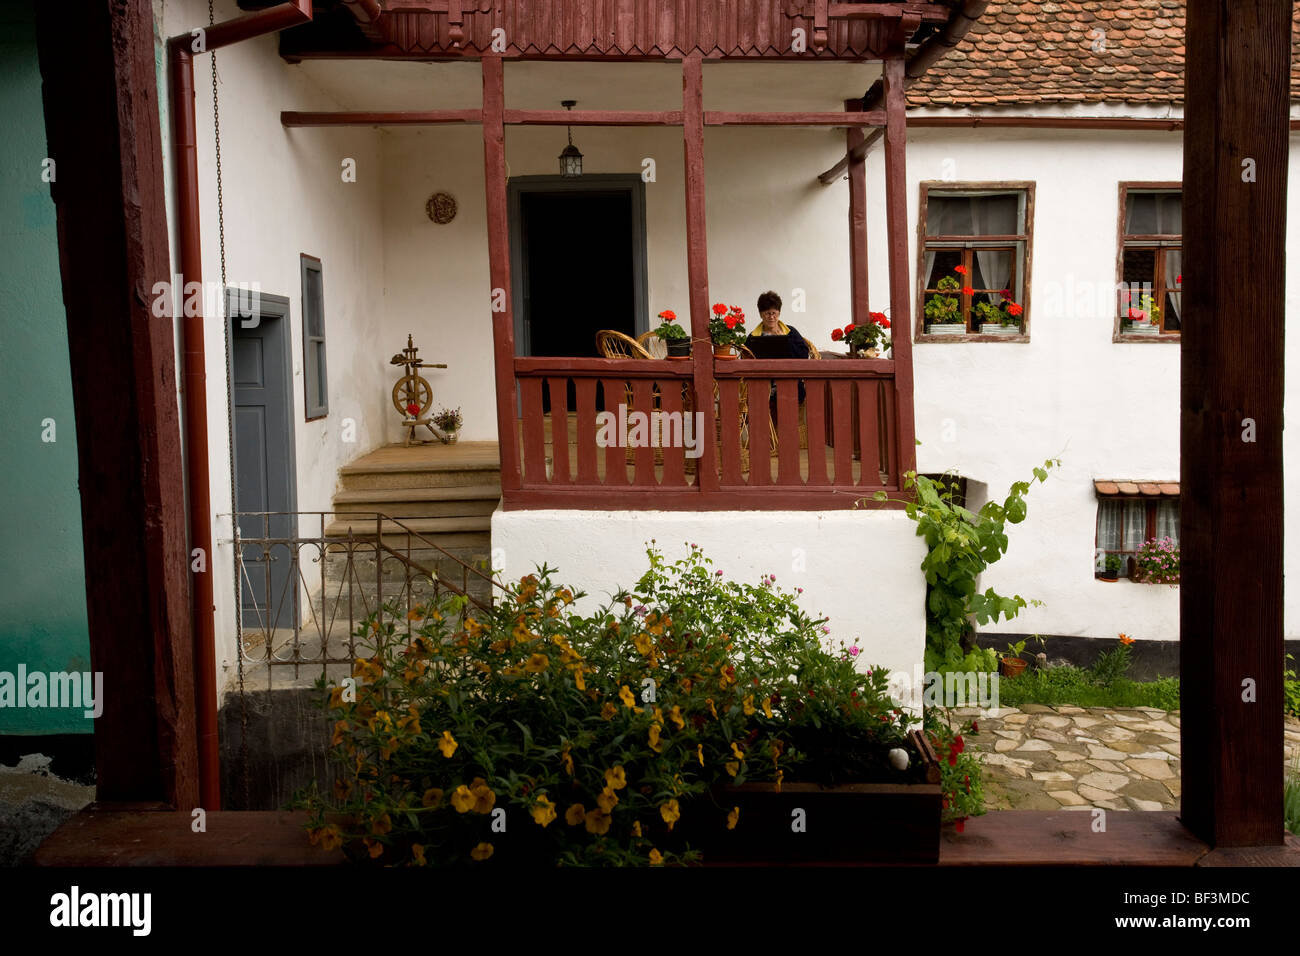 In the courtyard of an old Saxon house in Crit, Transylvania - Stock Image